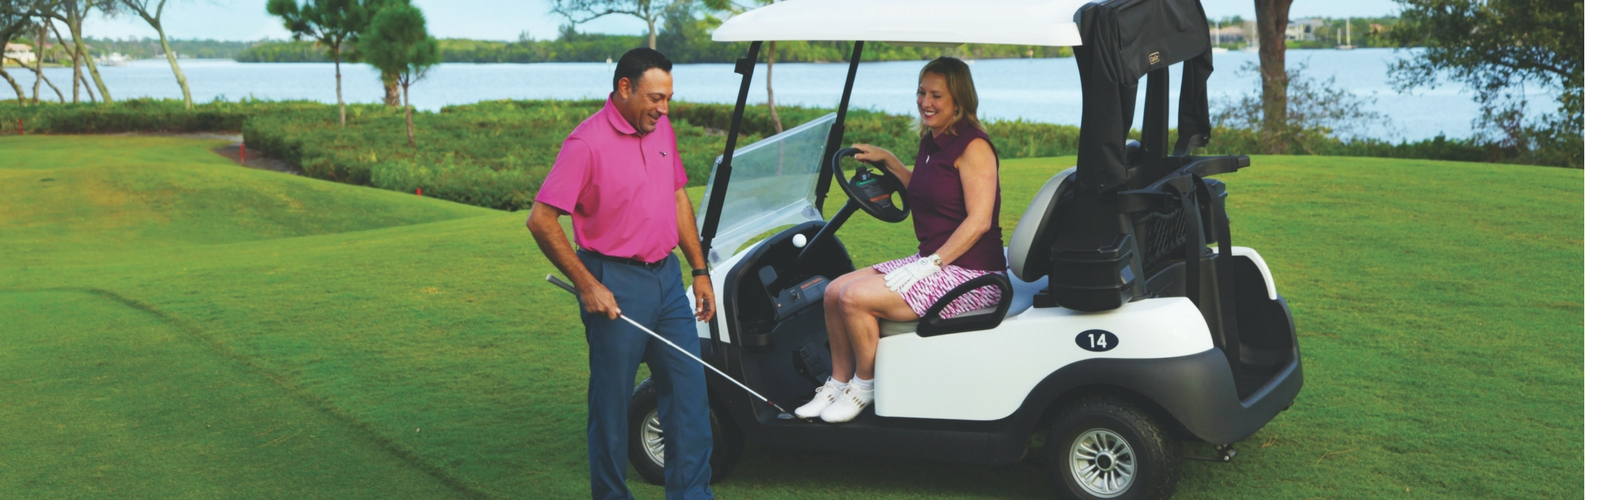 """The Golf Course Home® Network Names this Community the """"Golf Course Home Community of the Year"""""""